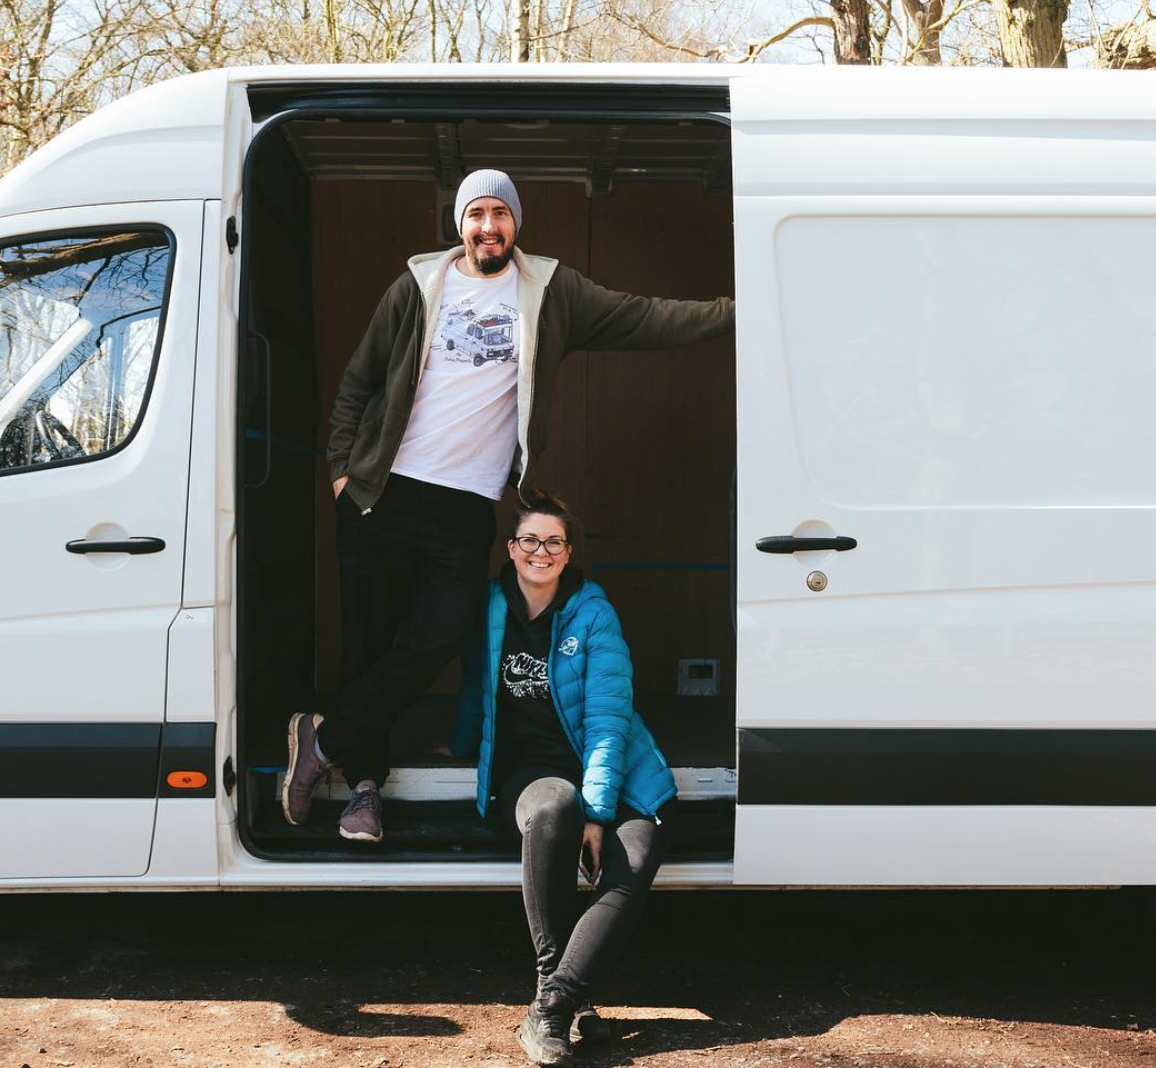 Van Life Instagram - The Indie Projects